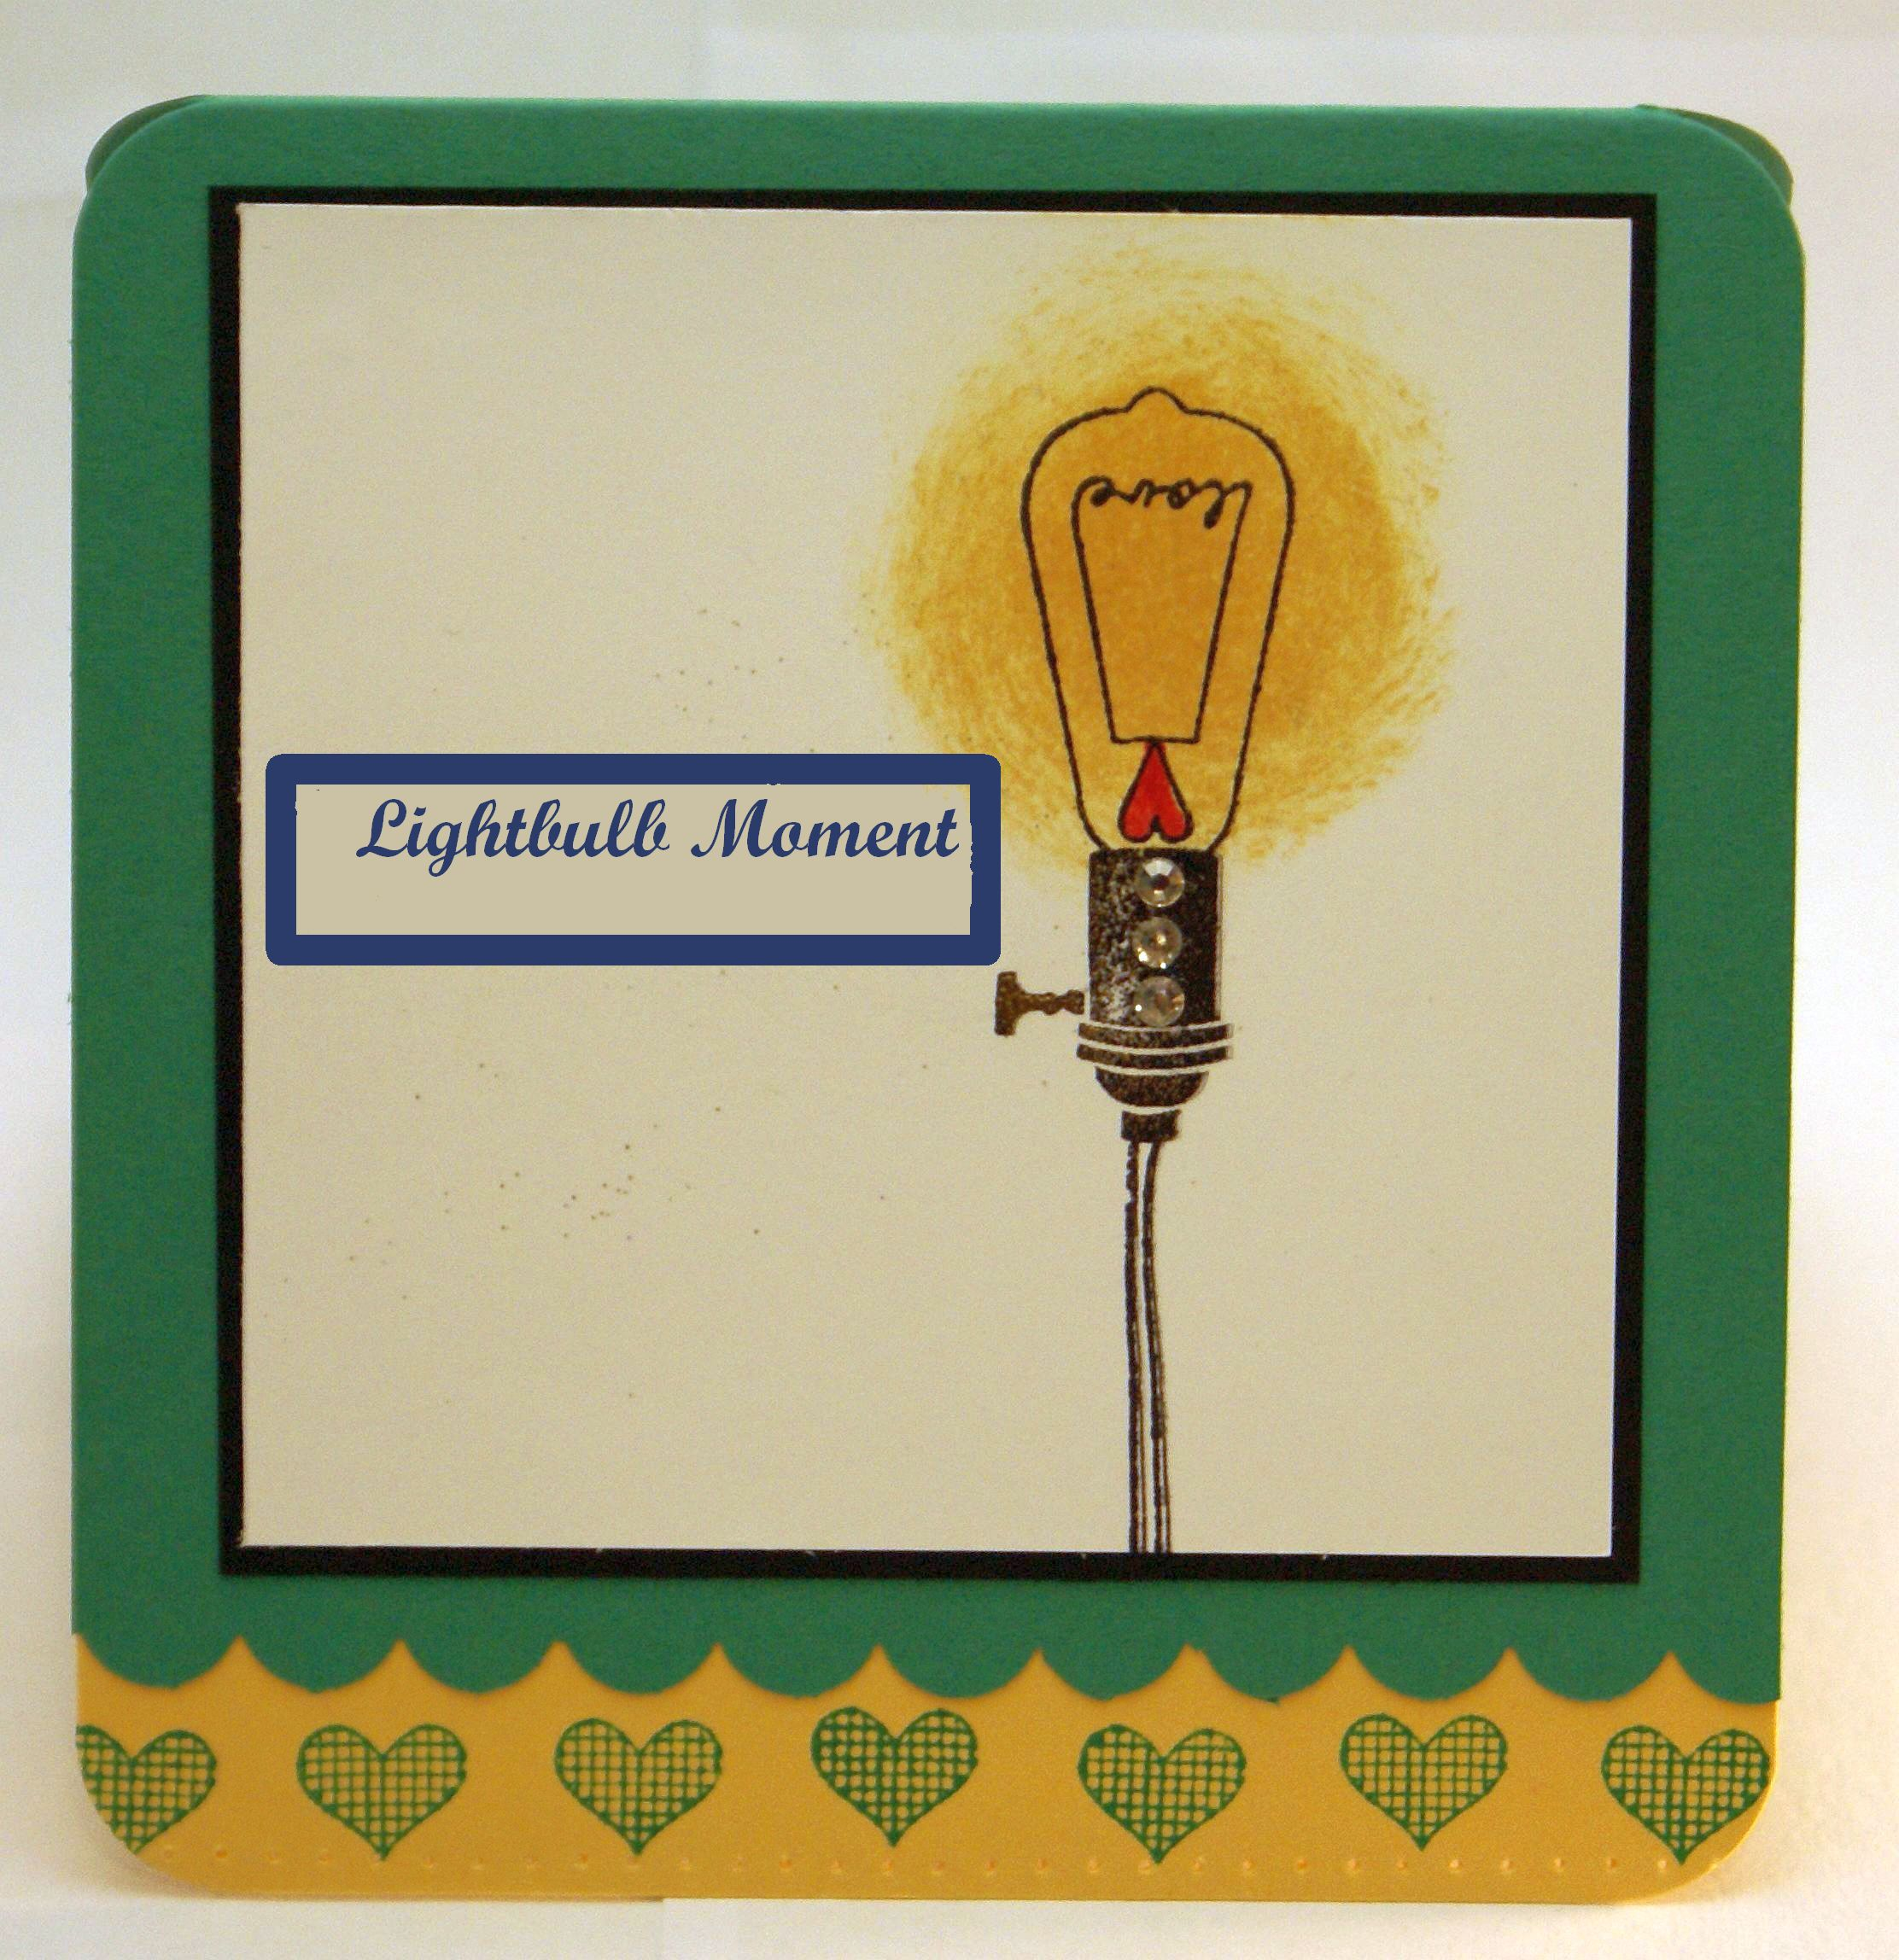 Lightbulb Moment card